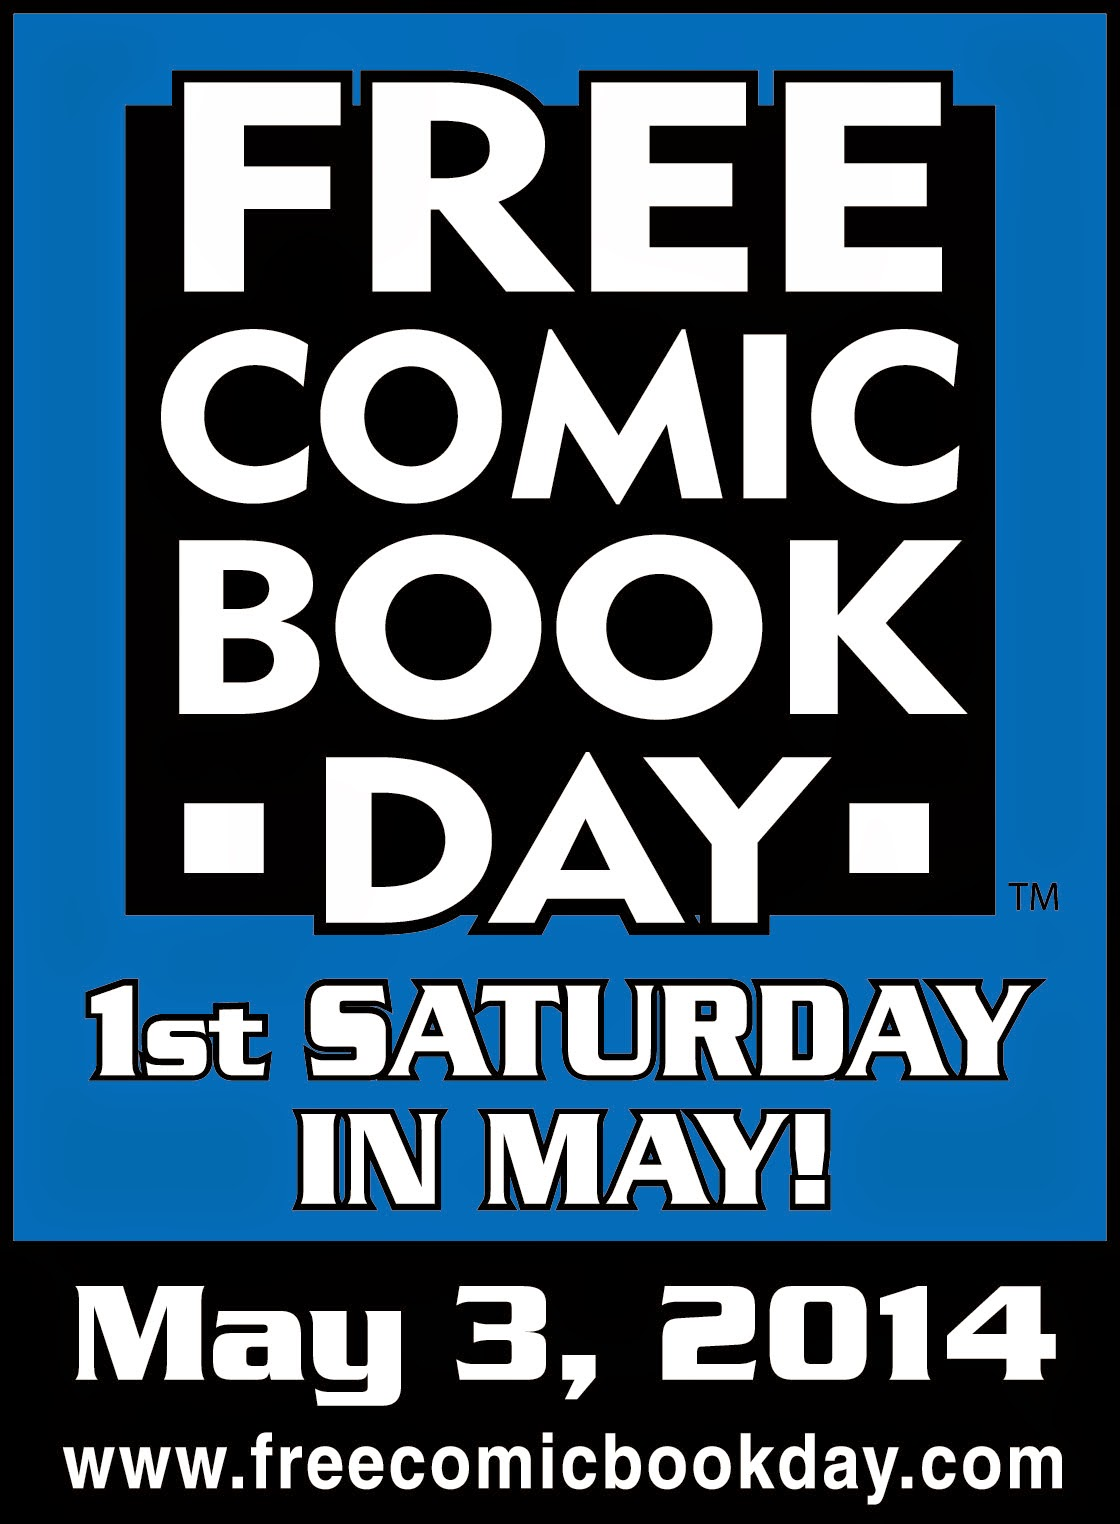 Have you gotten your free comics yet?